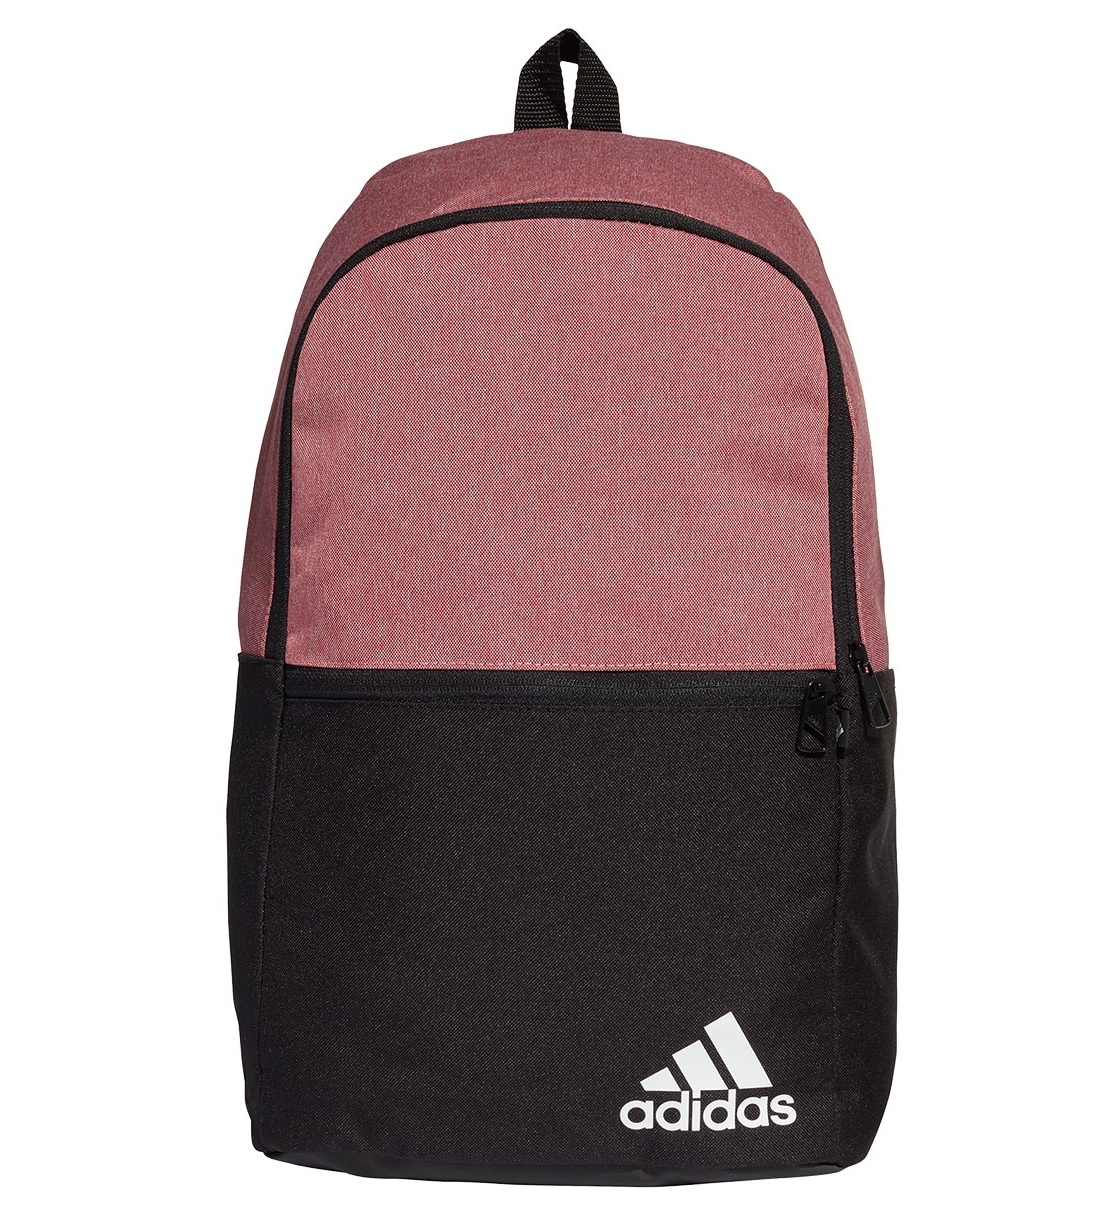 Adidas Ss21 Daily Backpack Ii